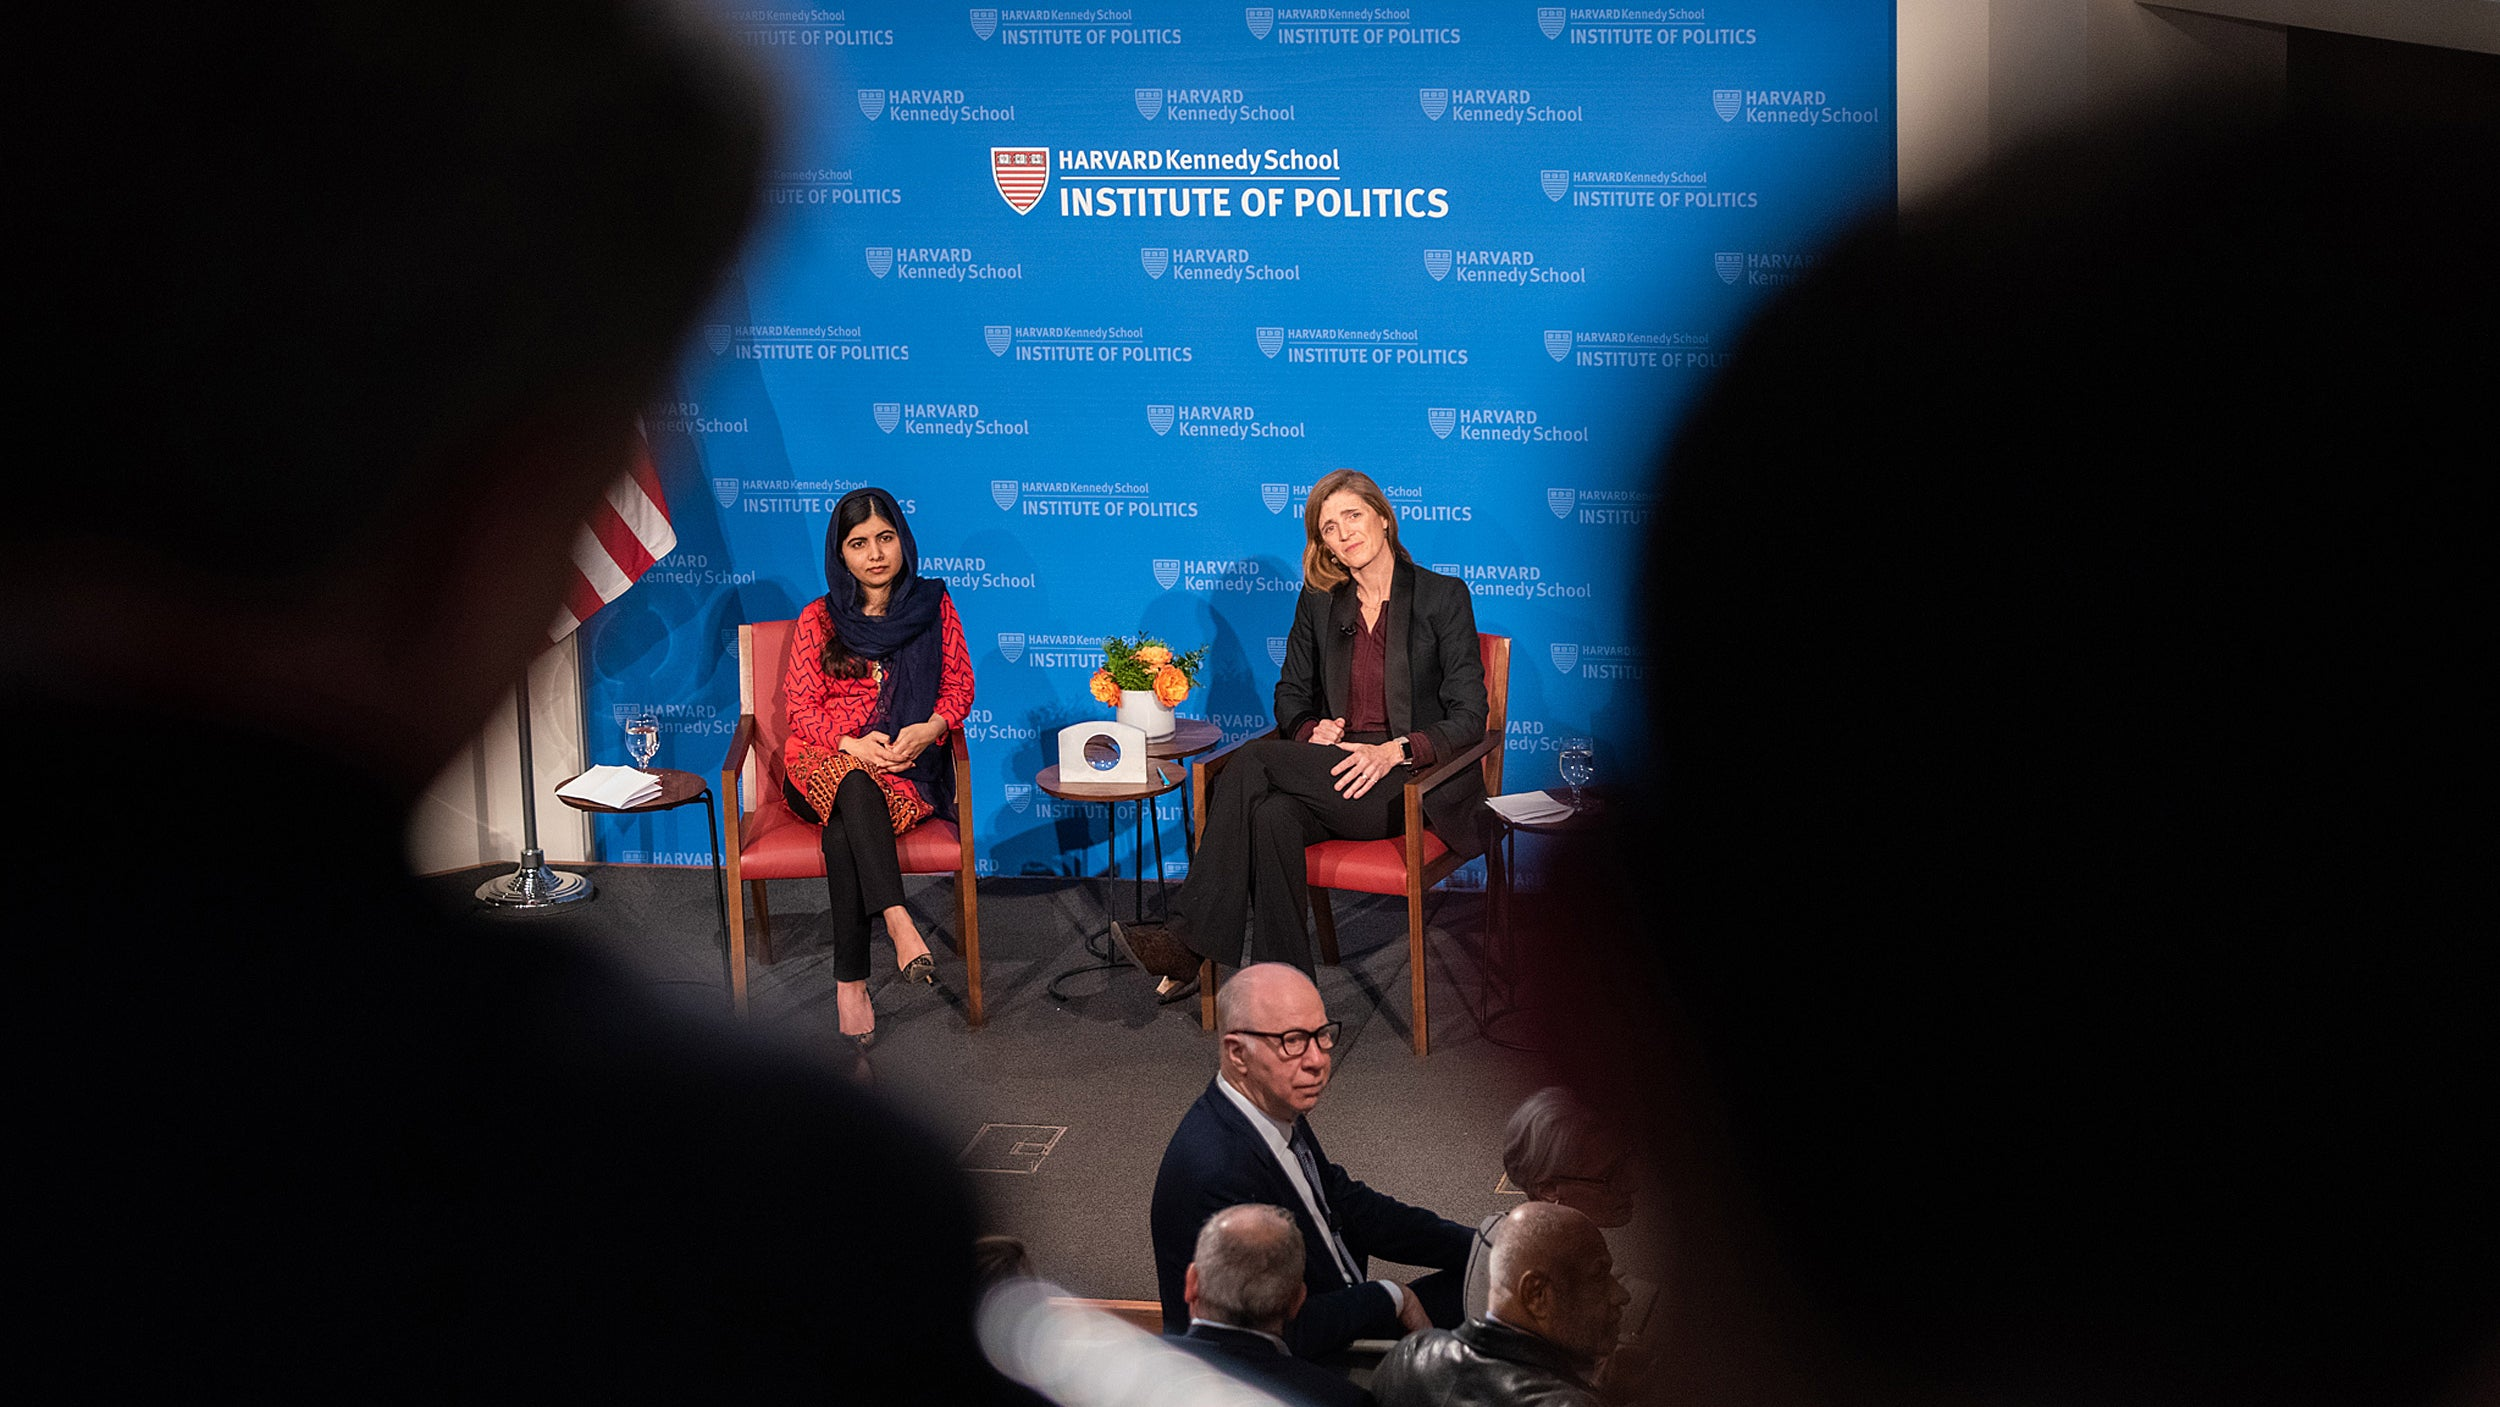 Malala Yousafzai and Samantha Power sitting on stage